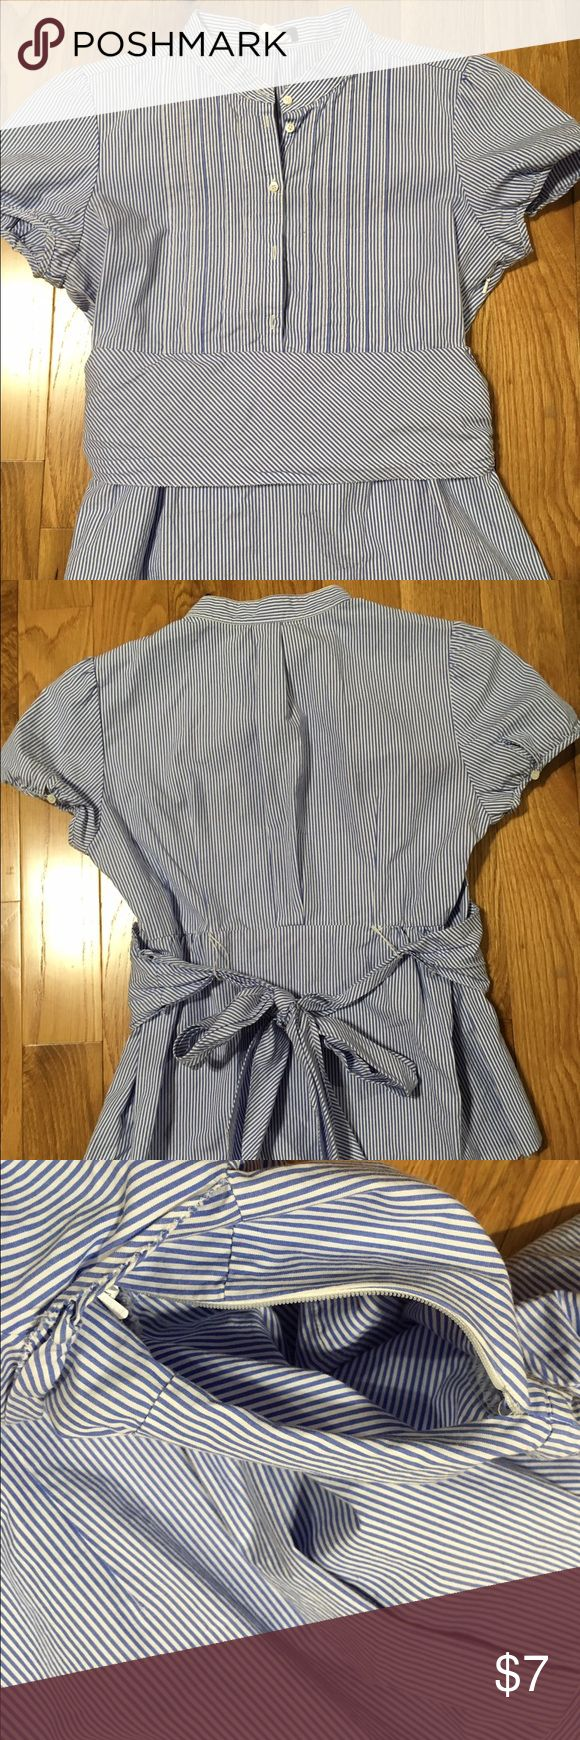 J Crew Girls Blouse This is a really cute girls blouse in a striped patten with a bow in the back by J Crew.  It is in great condition with no visible wear or stains. J. Crew Shirts & Tops Blouses